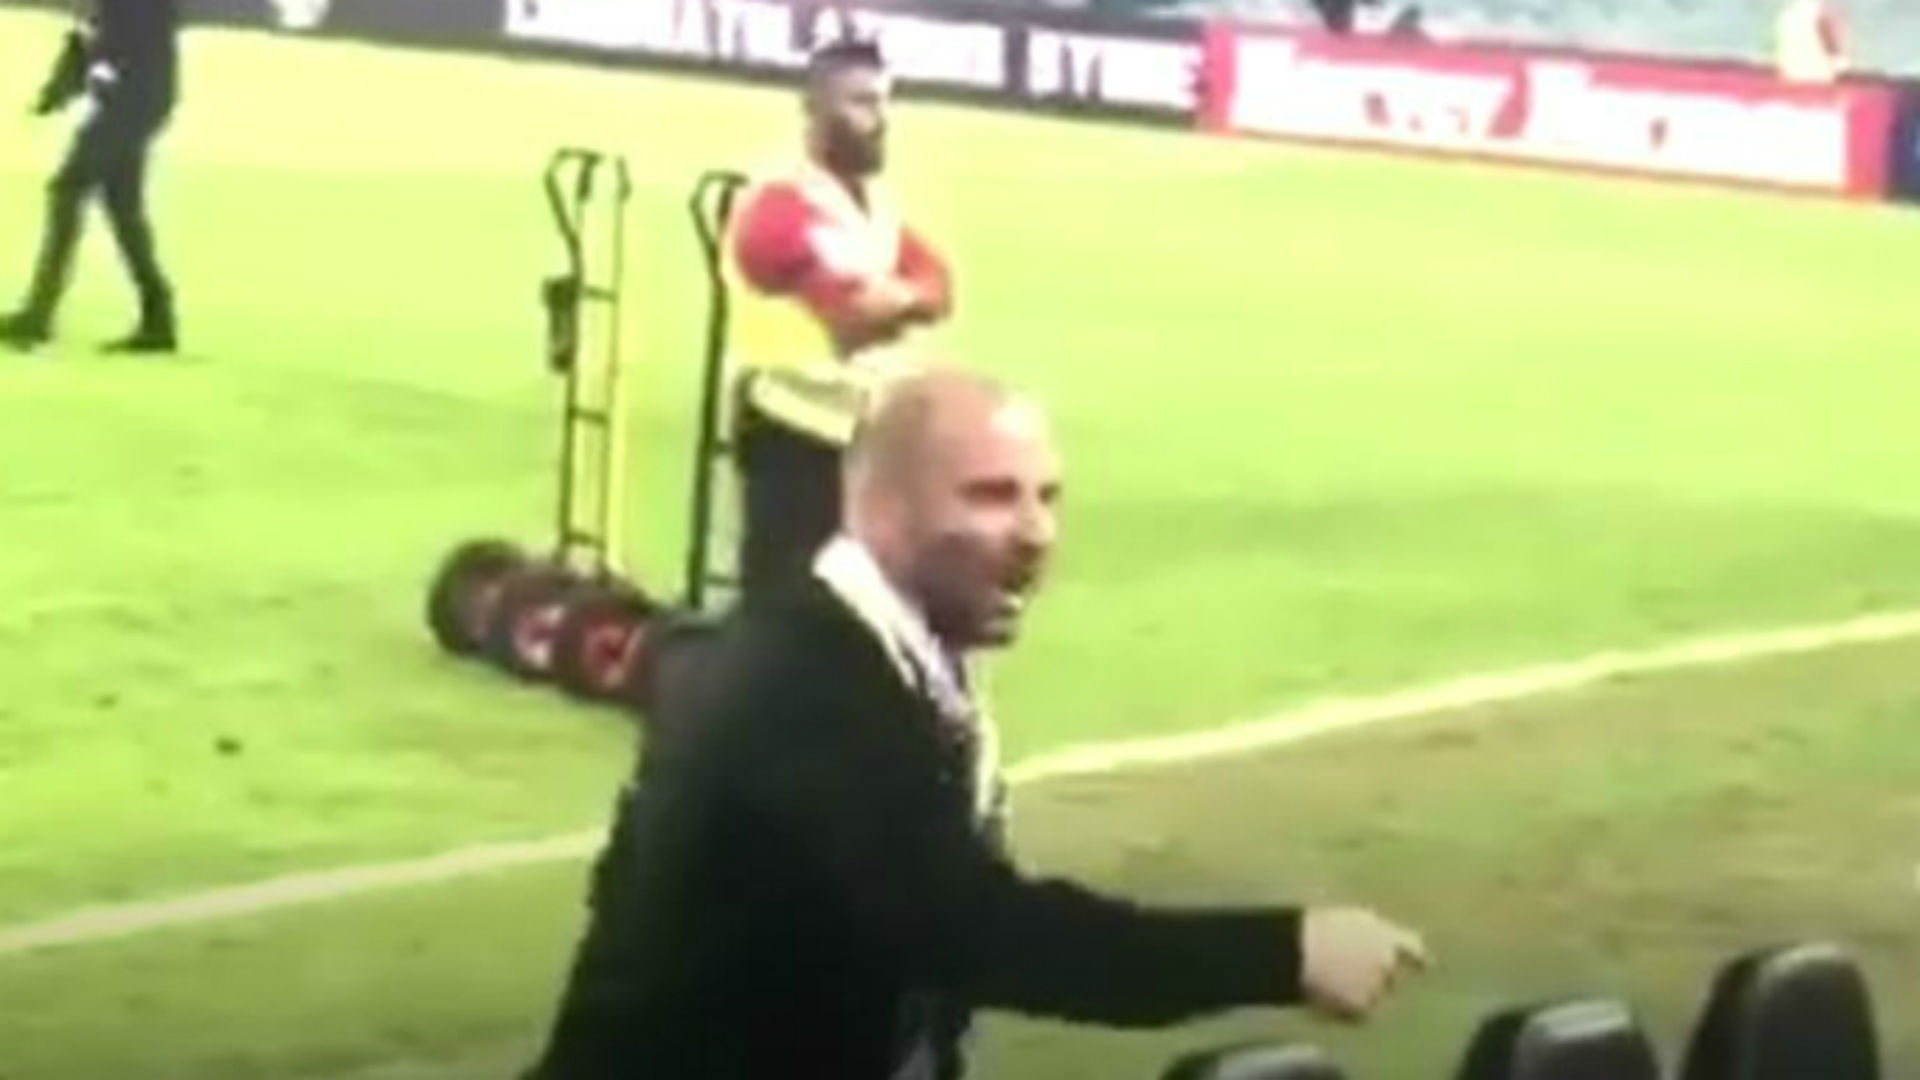 MasterChef host George Calombaris charged over alleged assault at soccer game